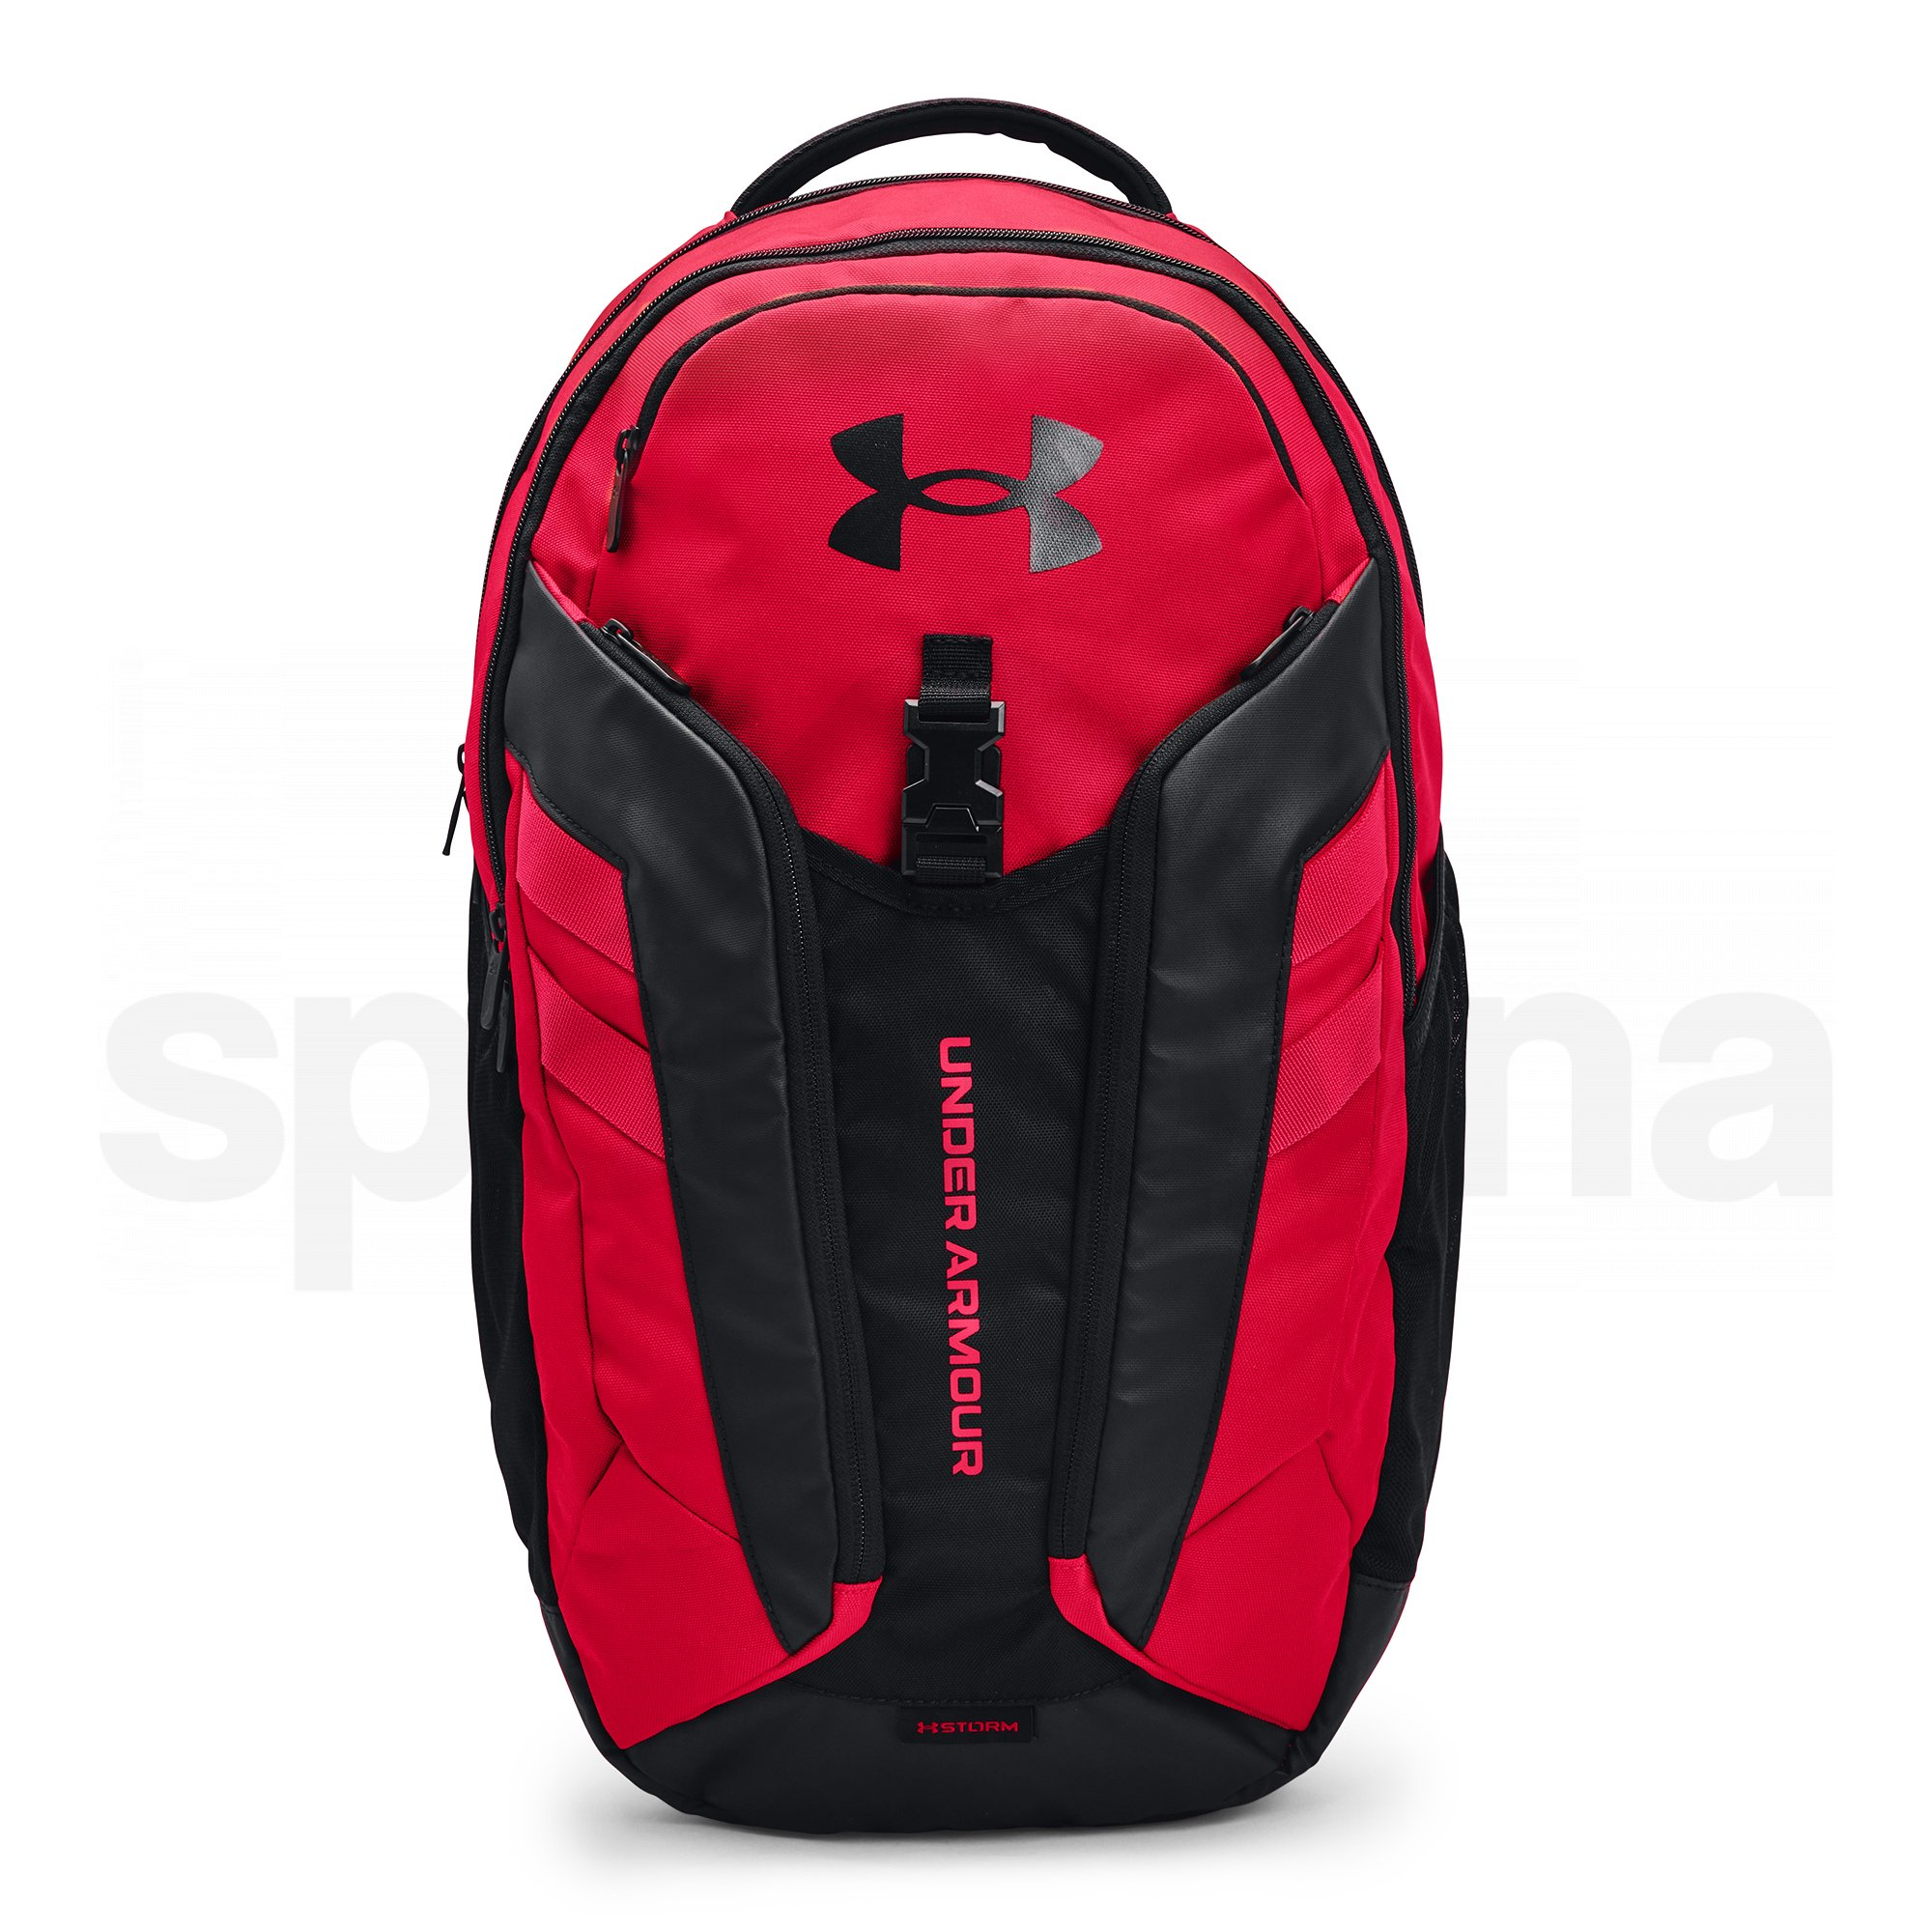 1367060-600_Under Armour Hustle Pro Backpack